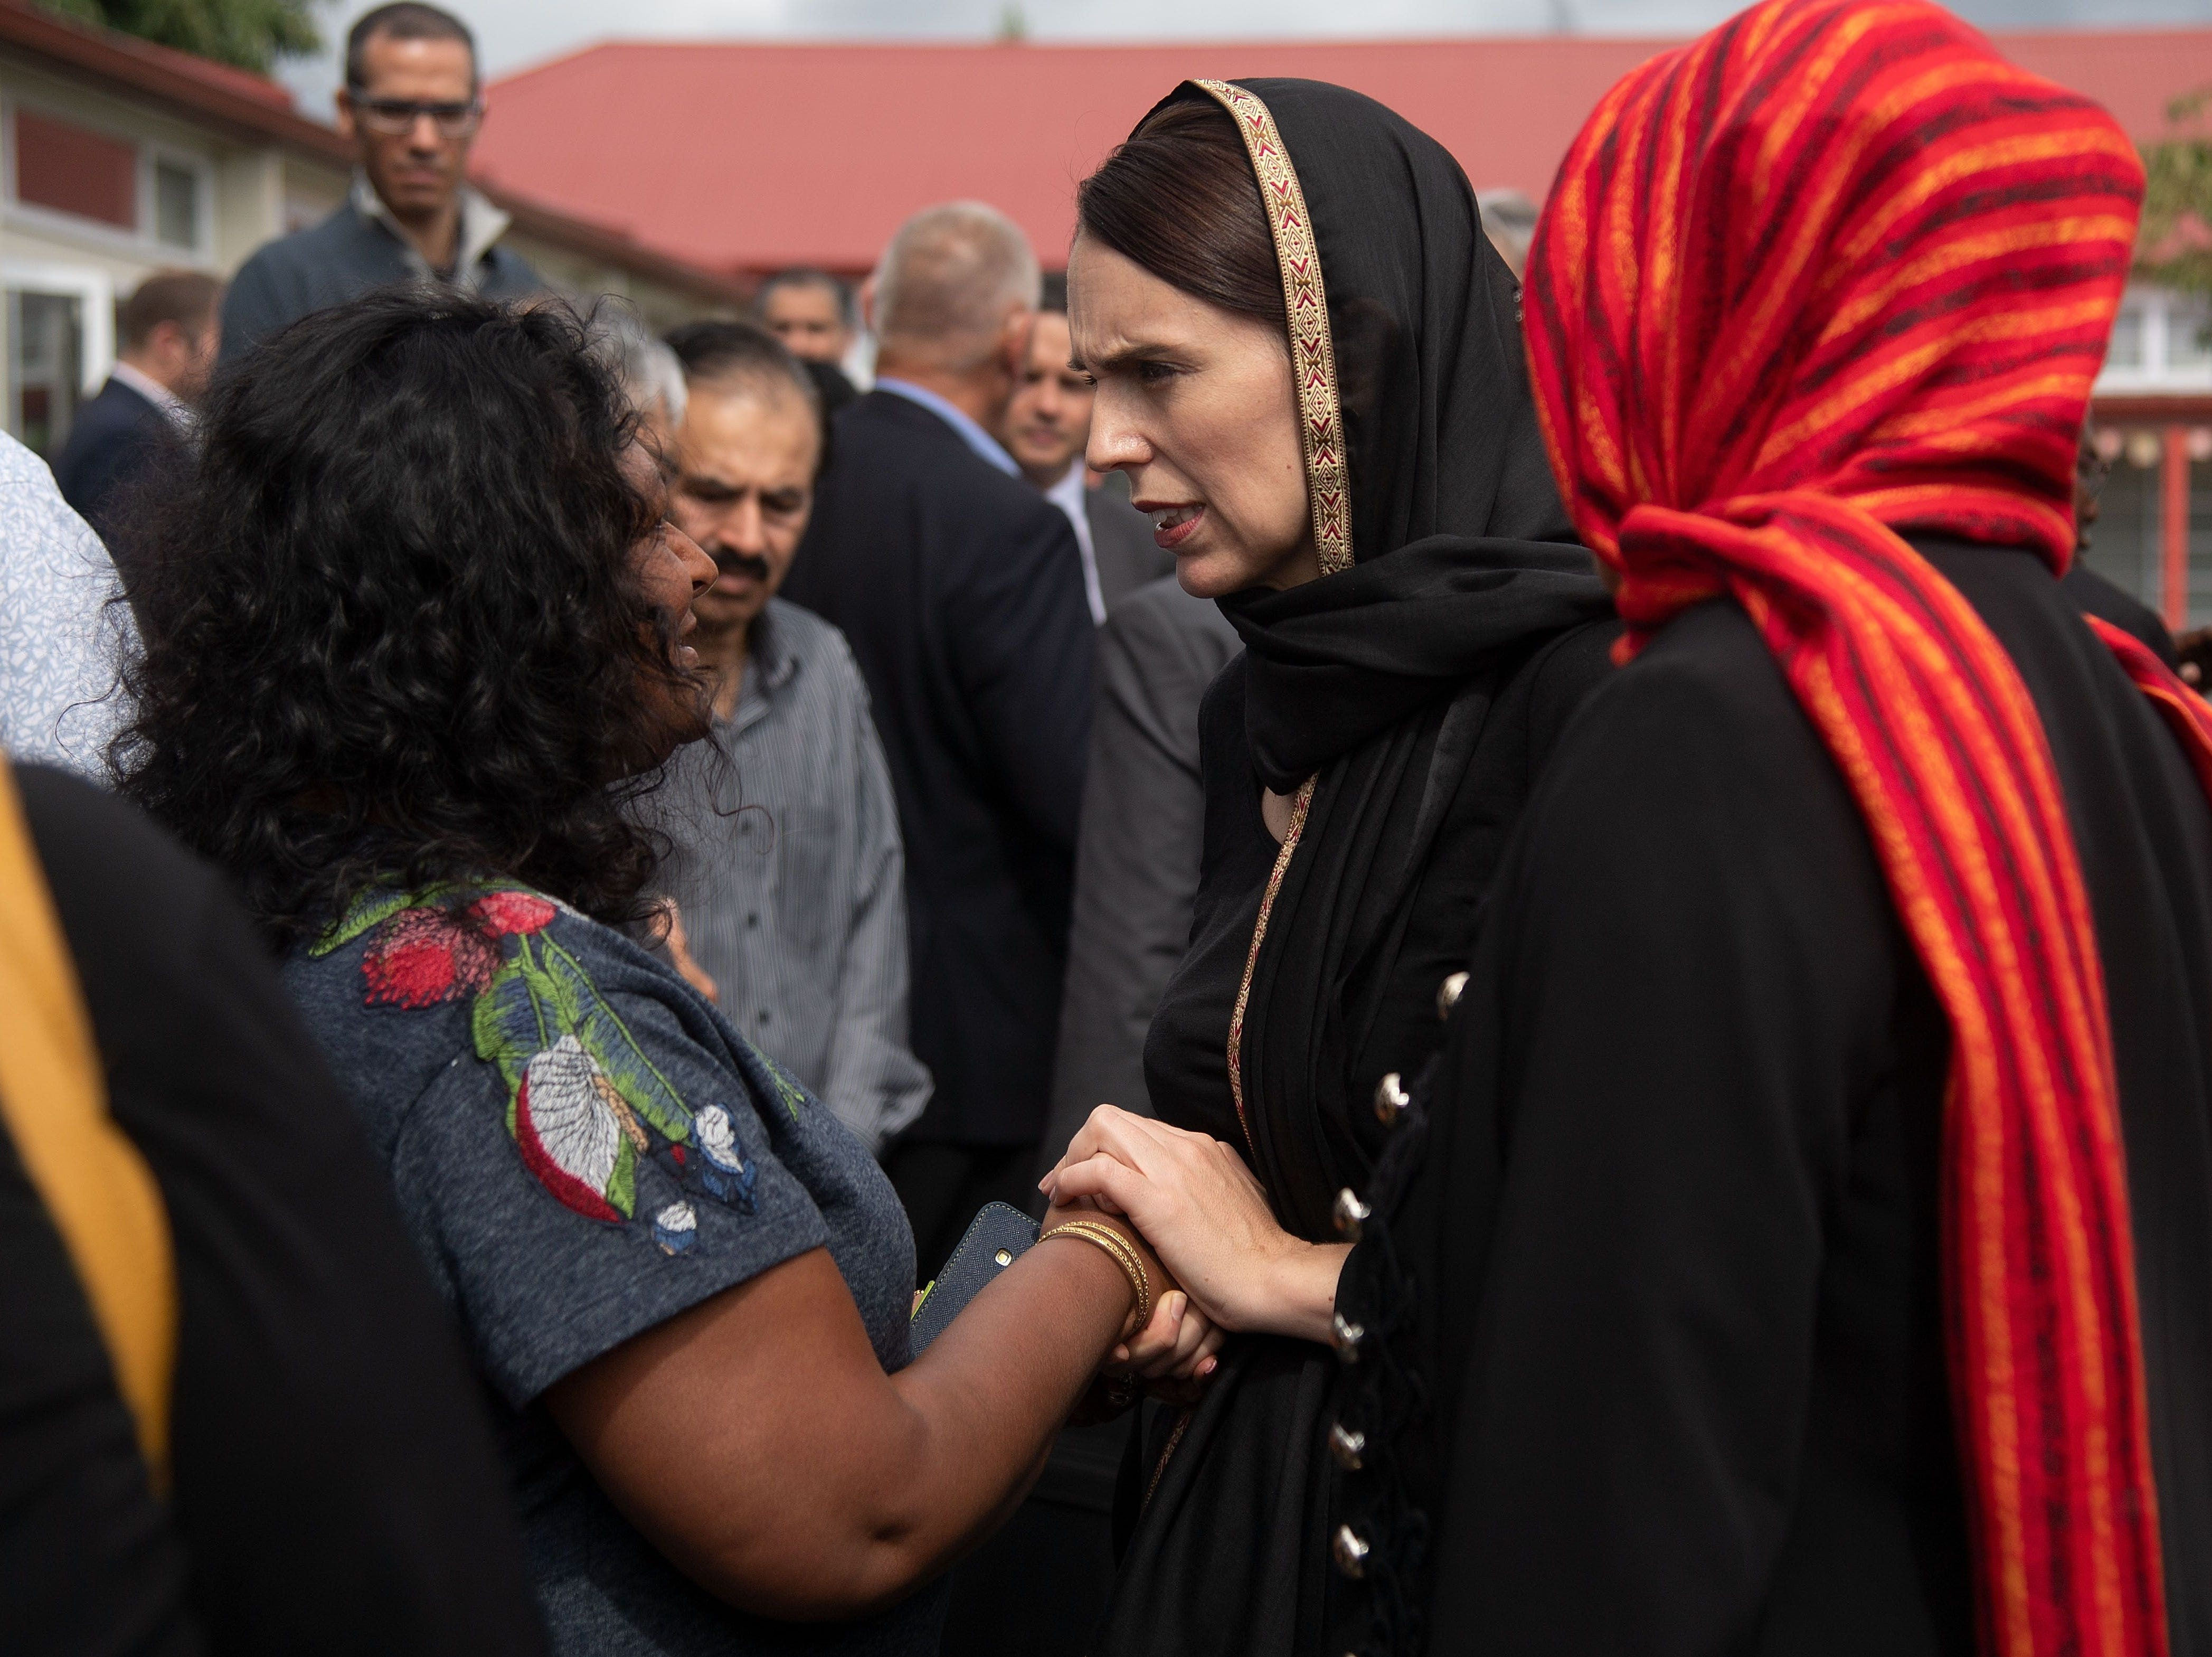 New Zealand Prime Minister Jacinda Ardern speaks with a representative of the refugee centre during a visit to the Canterbury Refugee Centre in Christchurch on March 16, 2019.